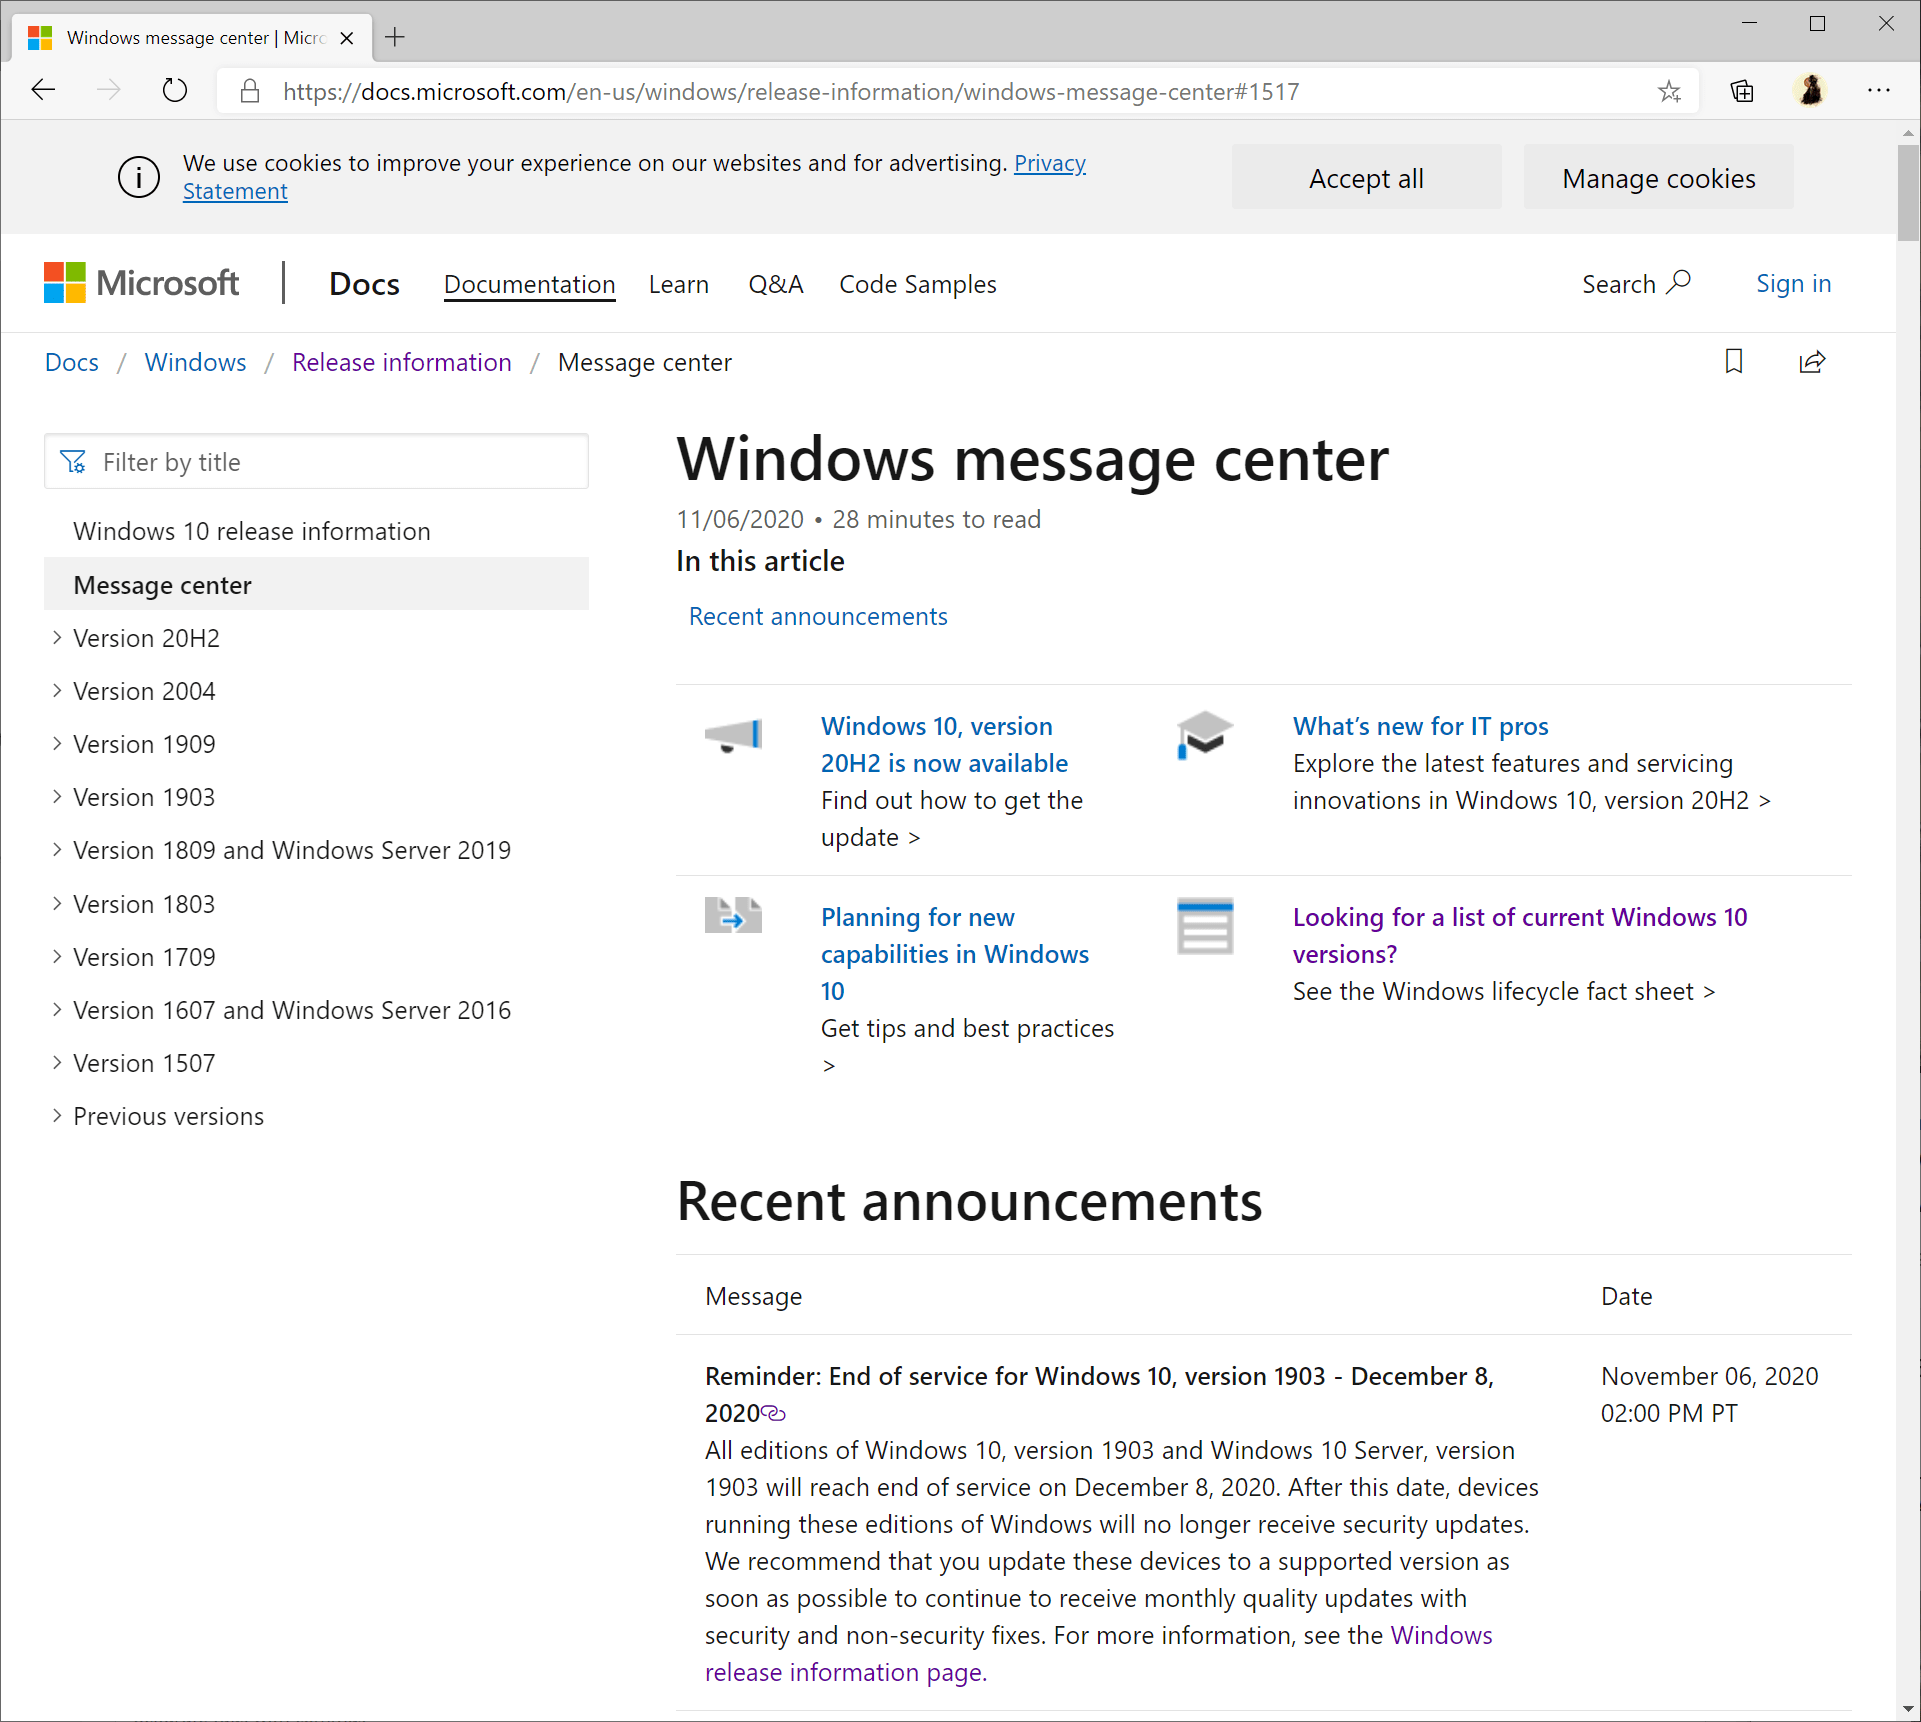 windows 10 version 1903 end of support